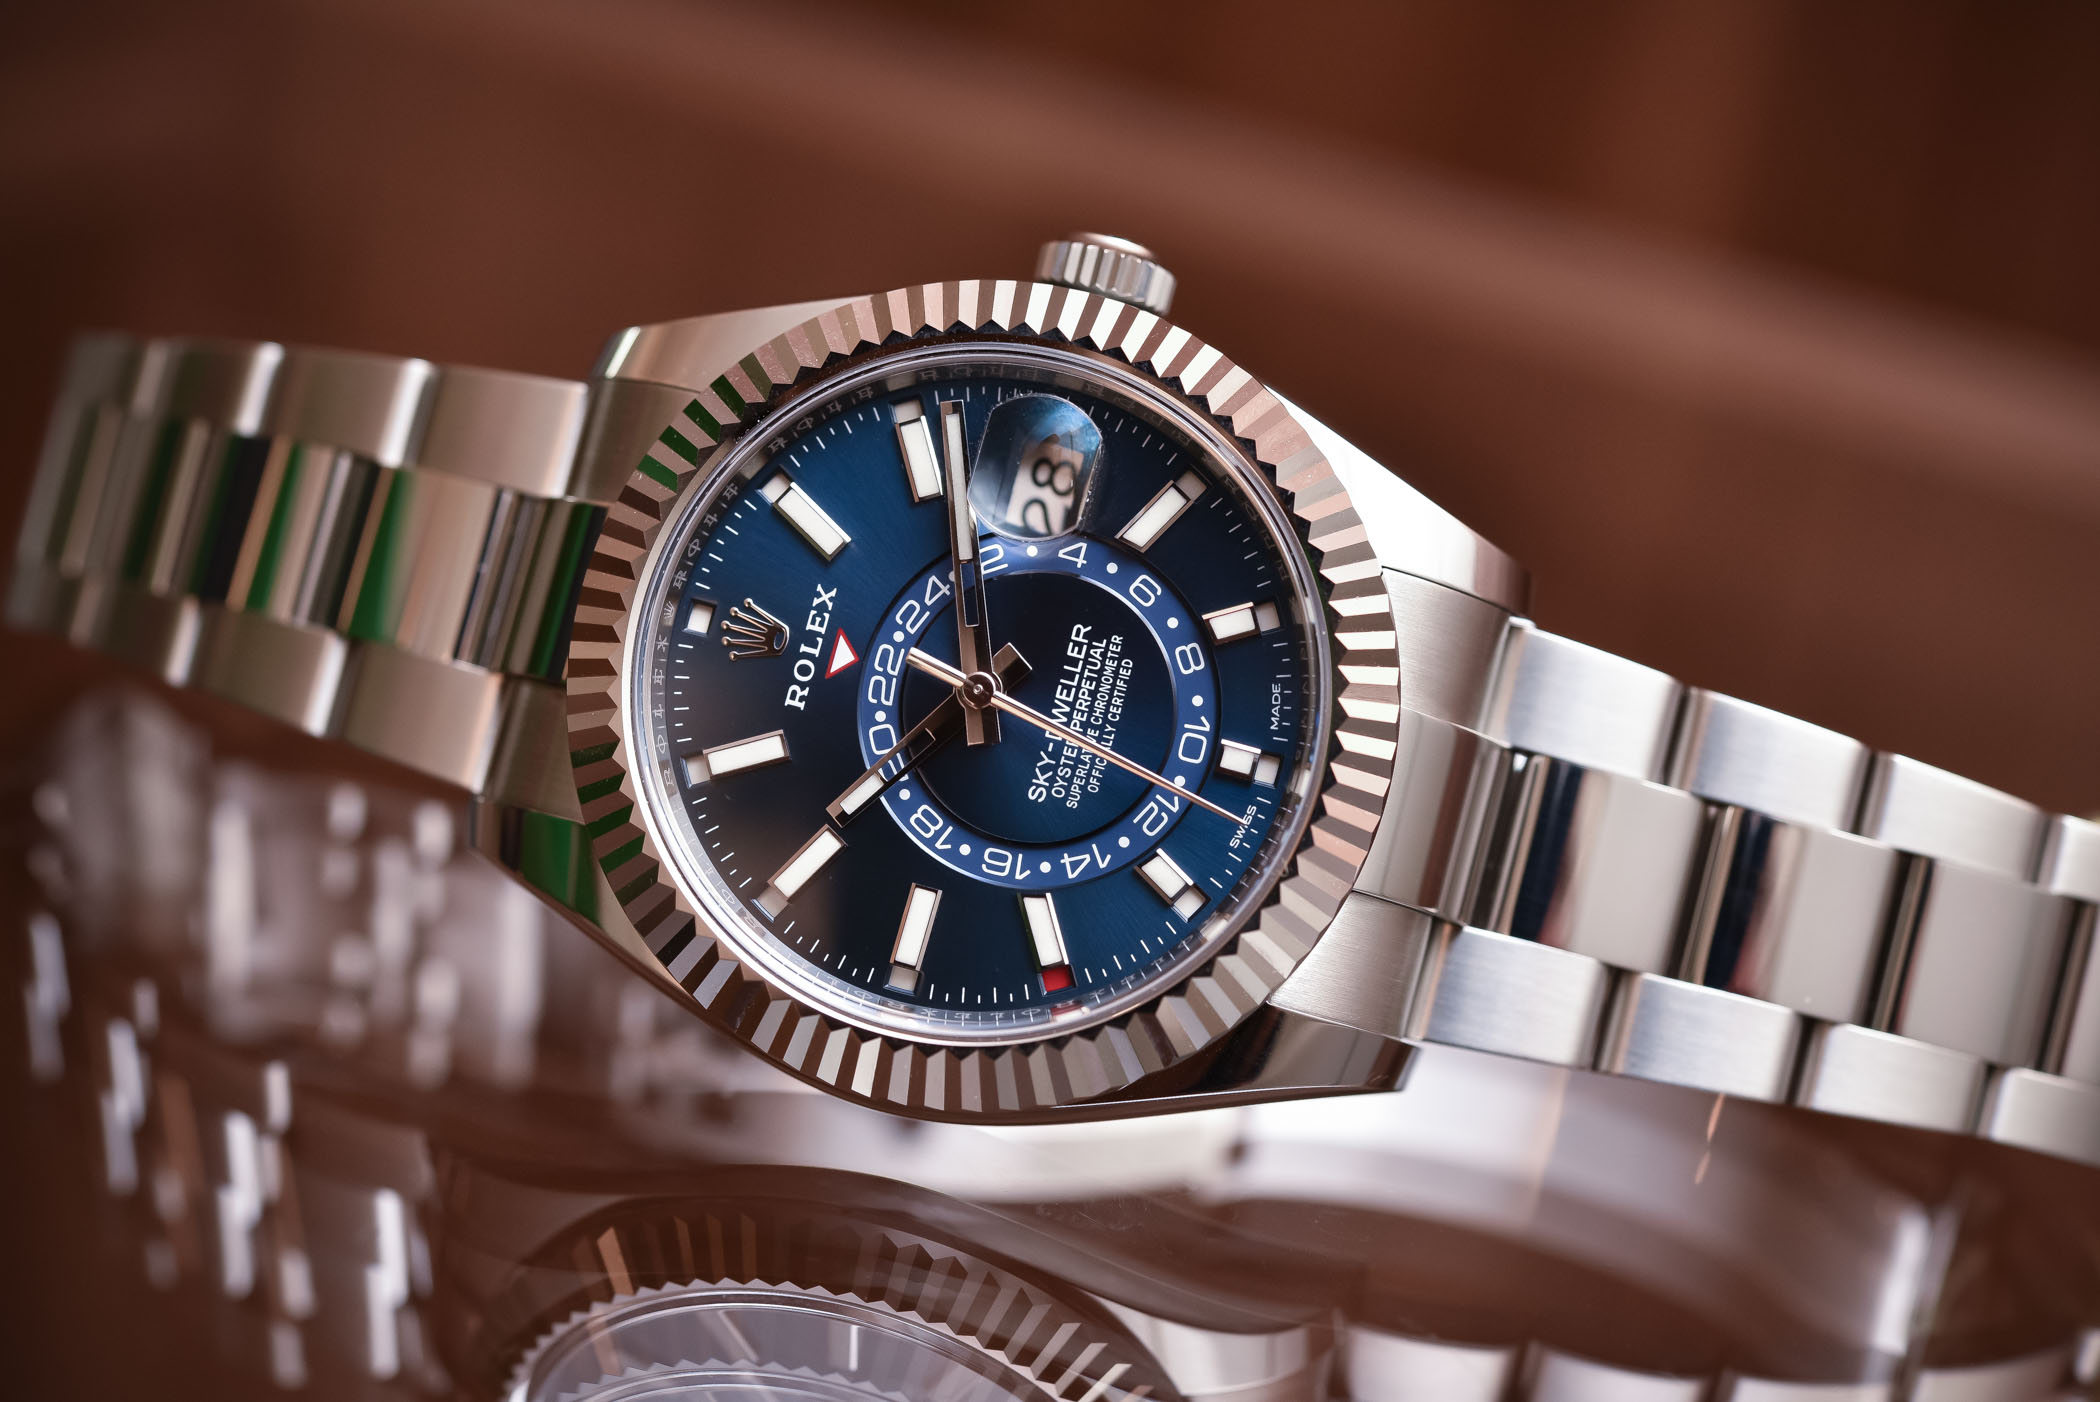 Buying Guide 2017 Annual Calendar Watches - Rolex Sky-Dweller Steel 326934